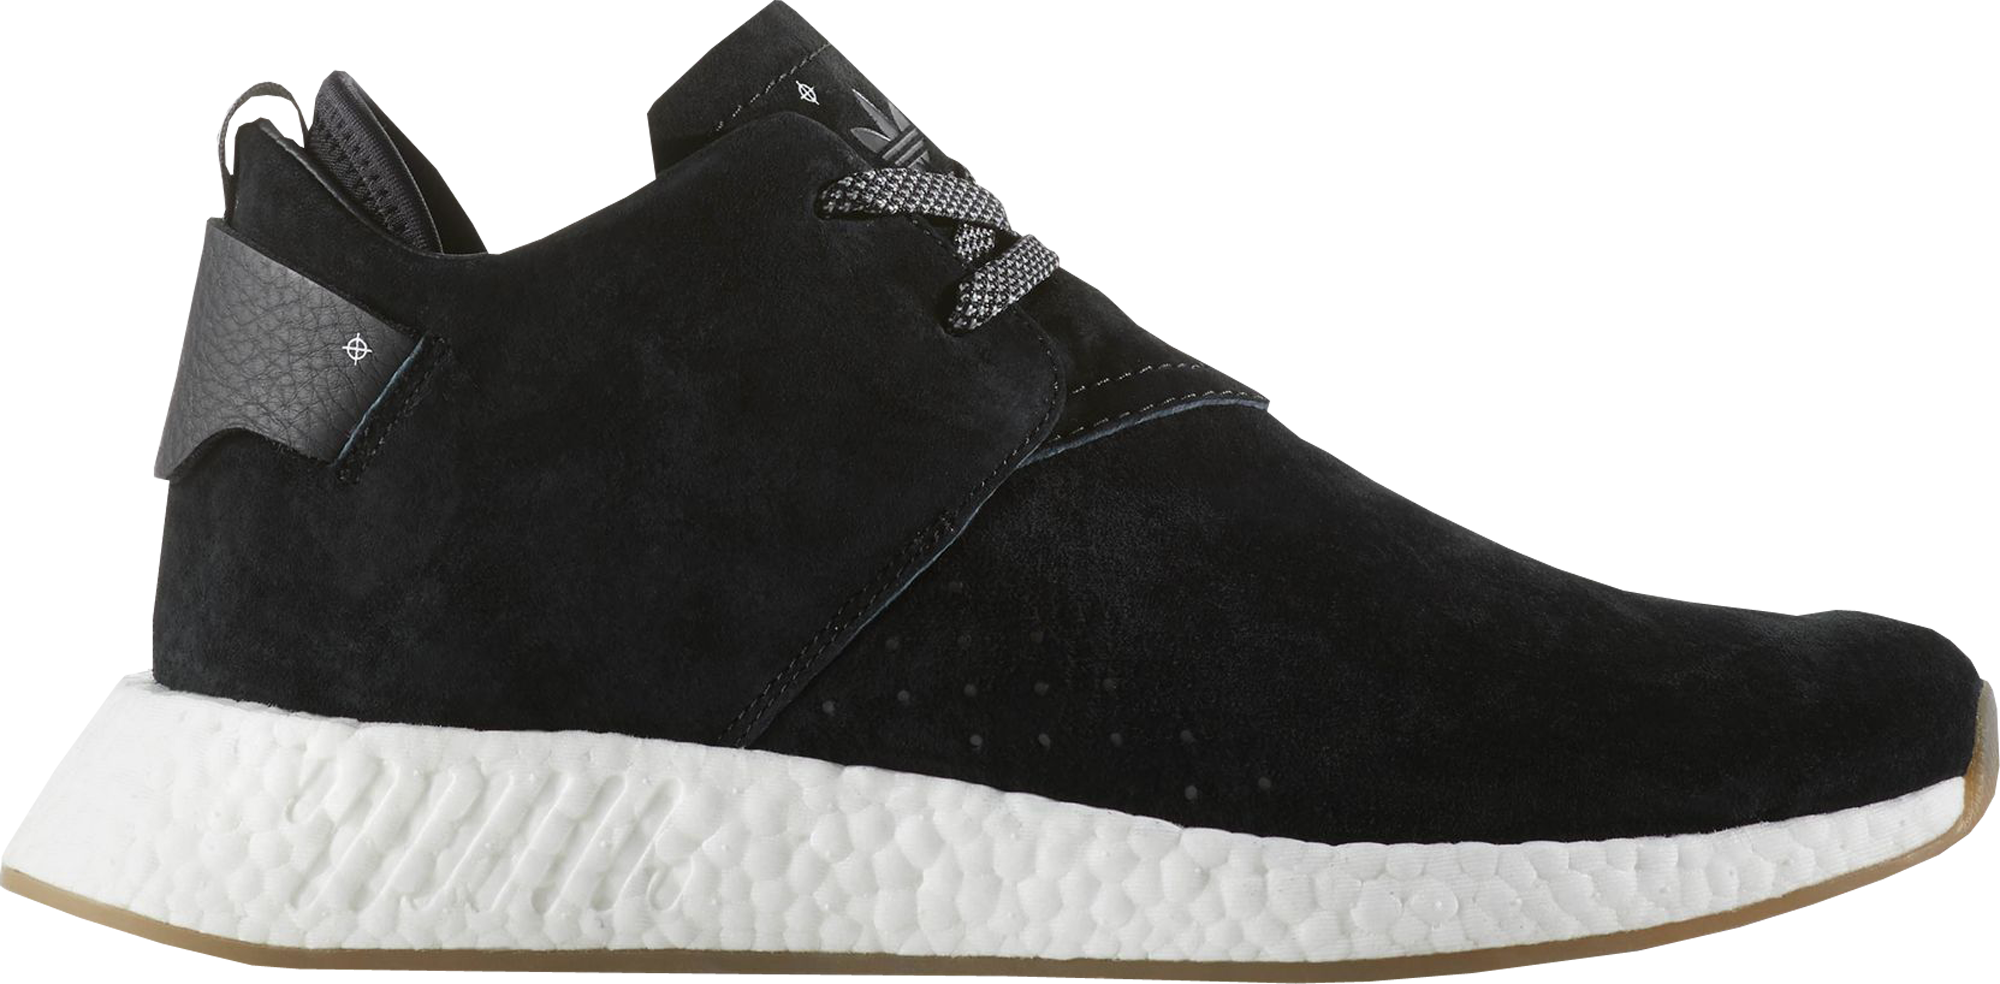 adidas NMD CS2 Suede Black - BY3011